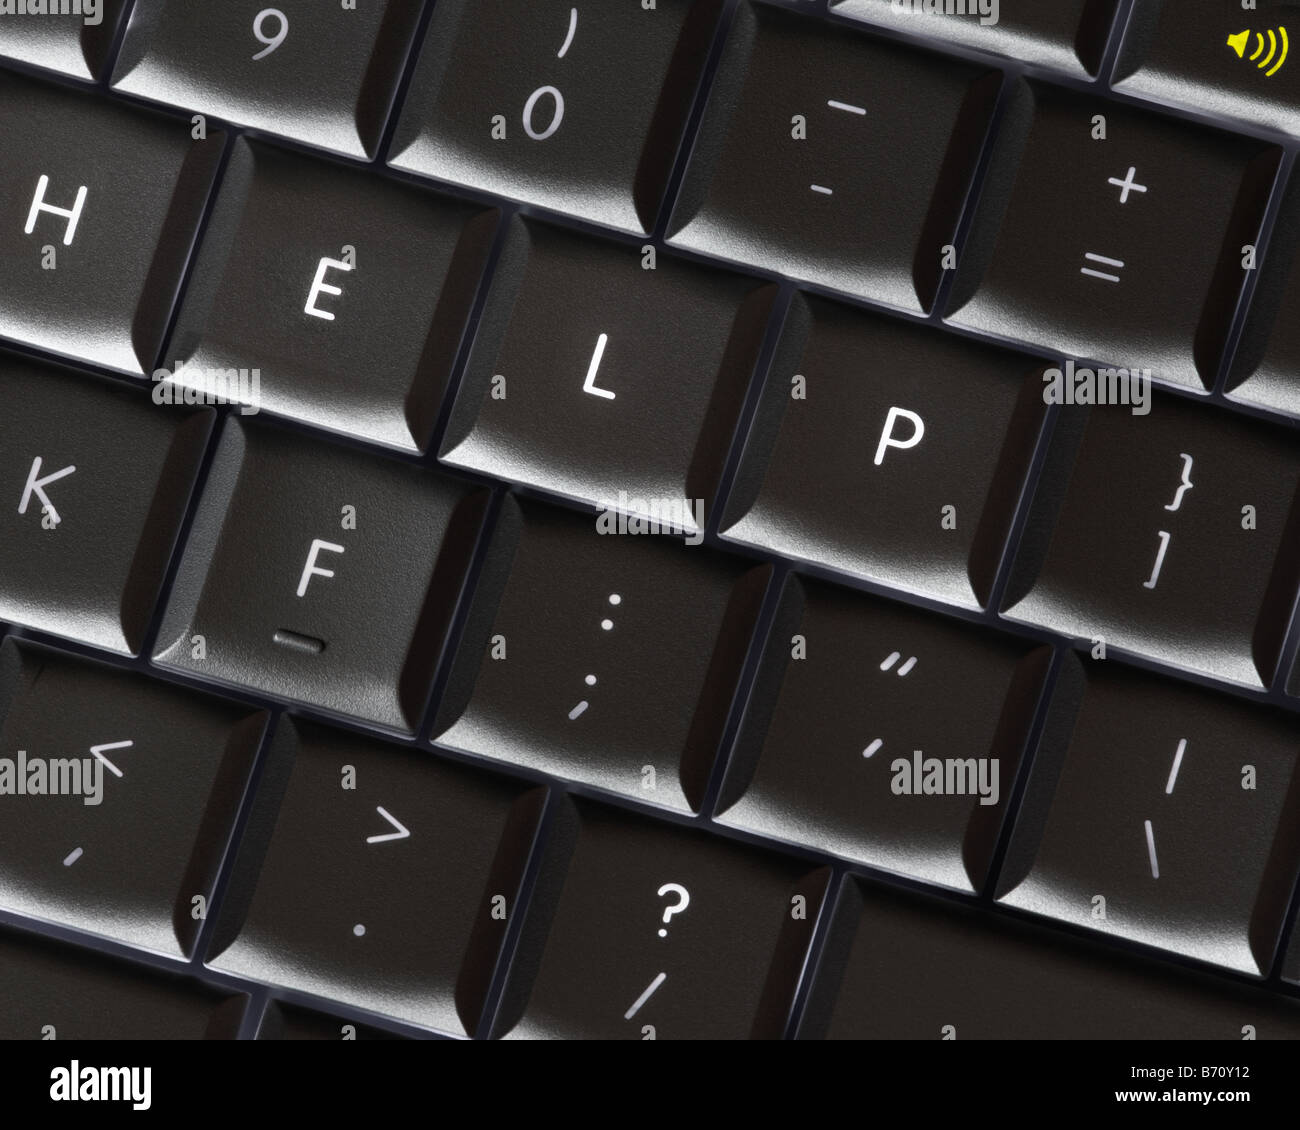 COMPUTER TECHNOLOGY: Help - Stock Image